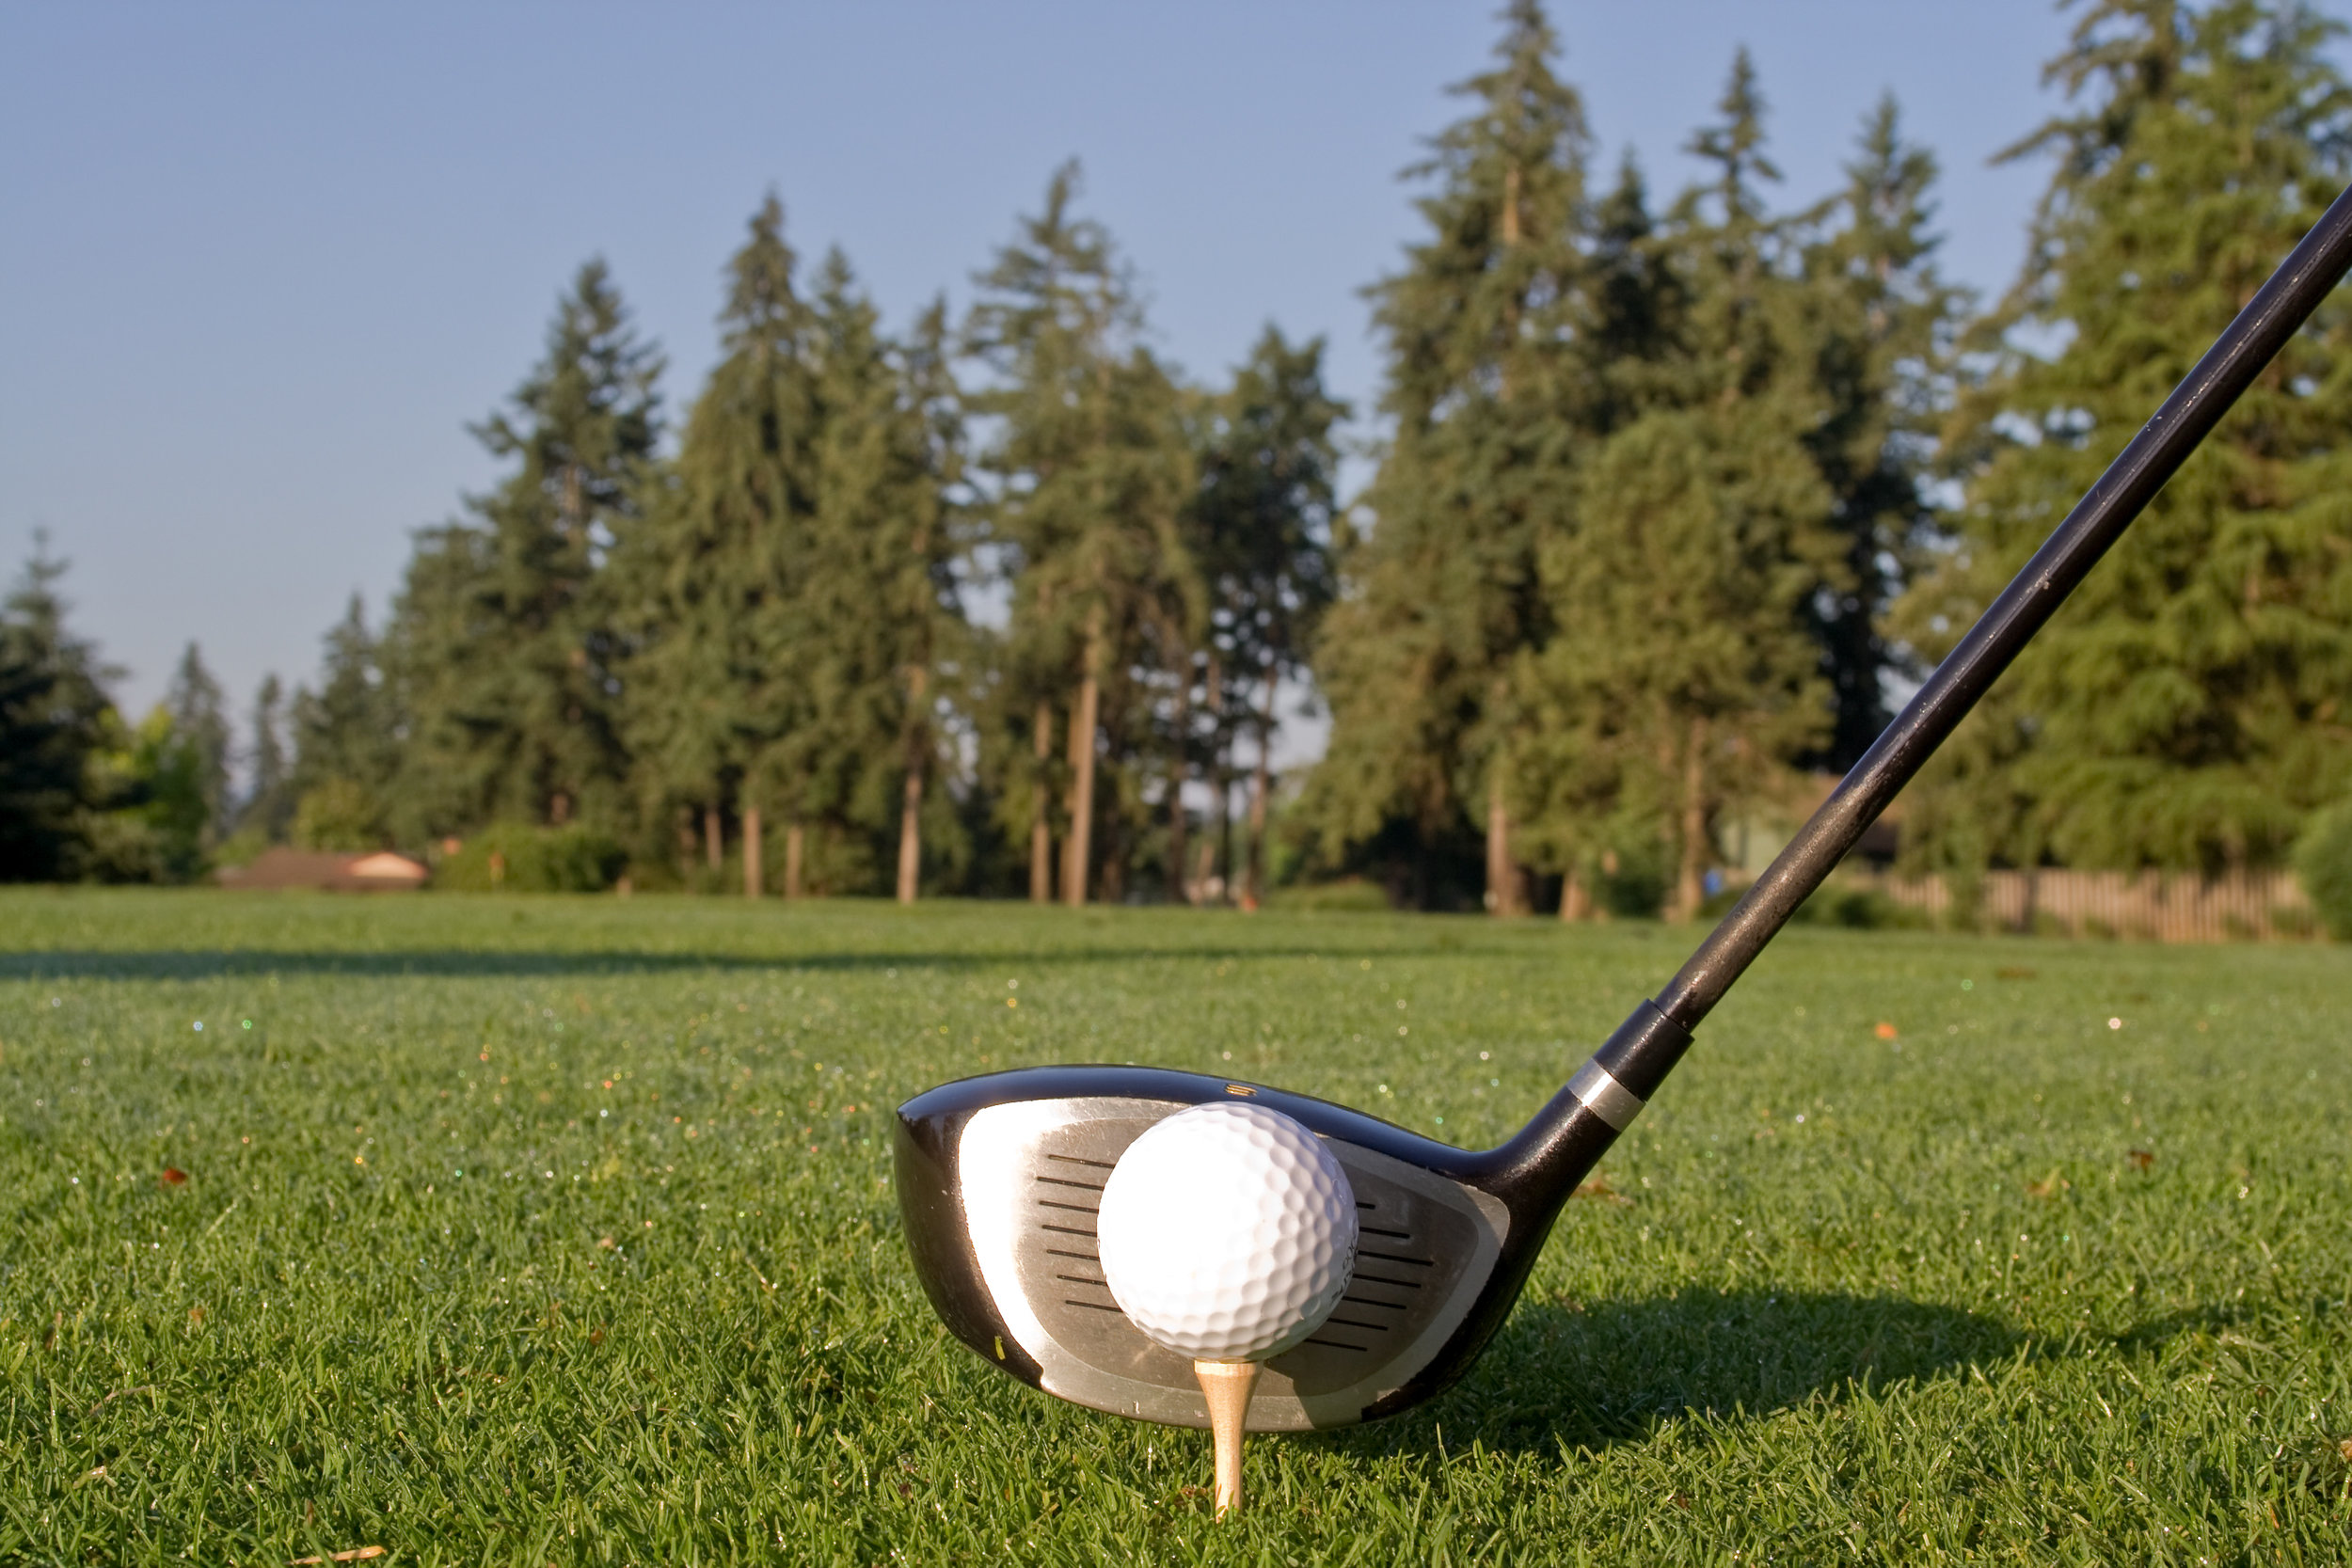 Golf Club & Ball.jpg